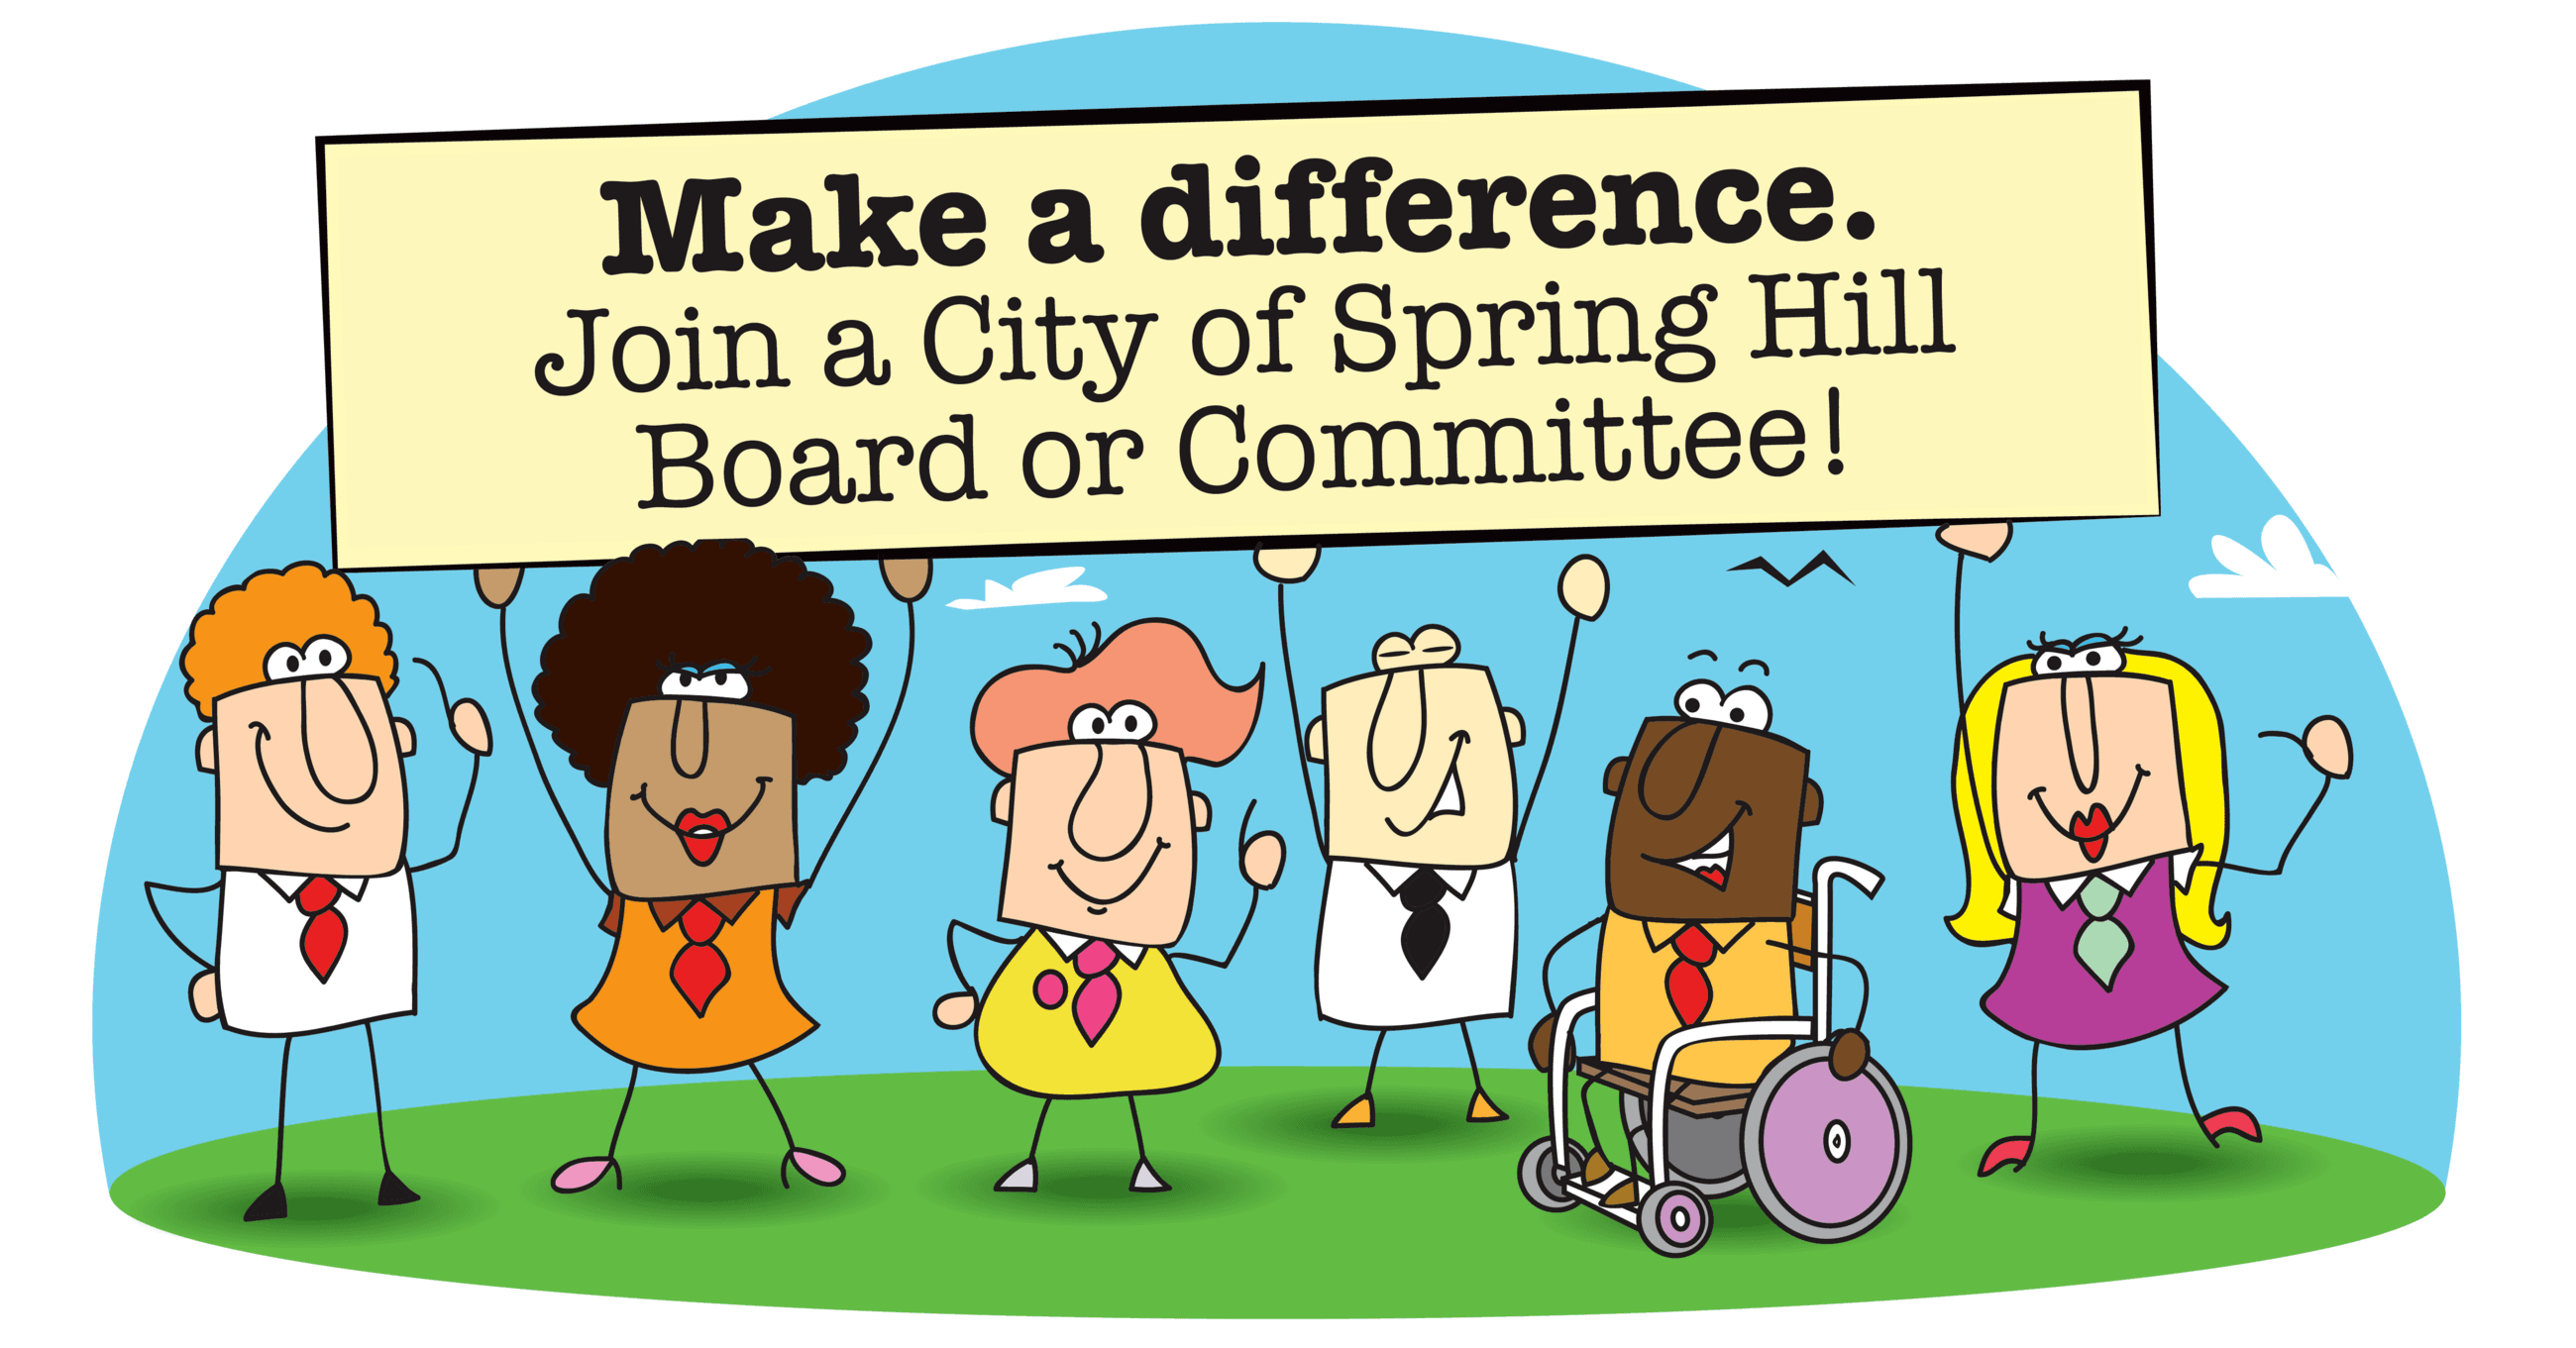 BOARDS COMMITTEES WEB GRAPHIC